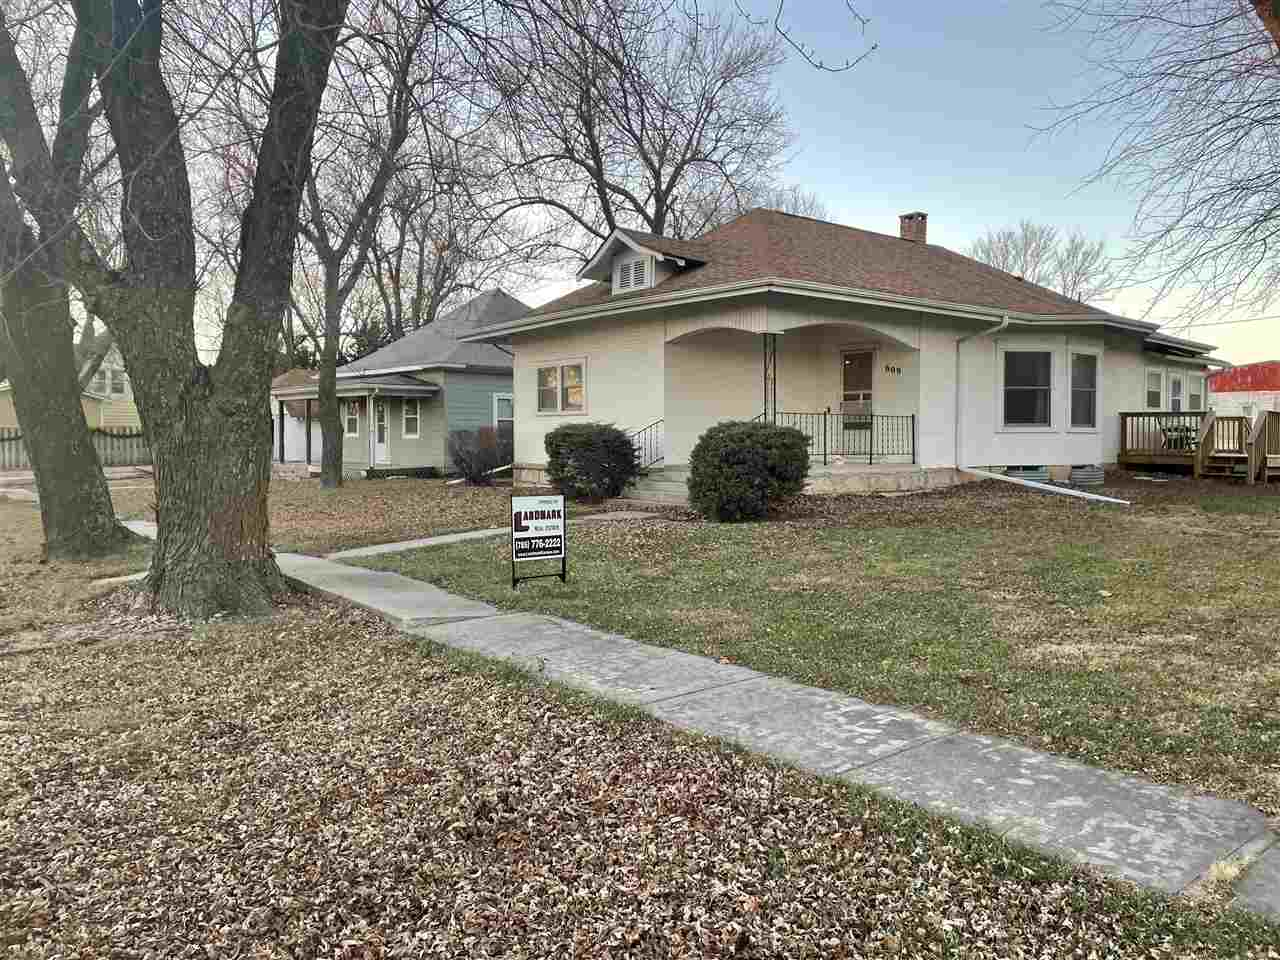 Unique opportunity for small town living.  After 71 years in the family, the owners have to move and do not miss this opportunity. Home is a 3 bedroom and 1 bath, a large detached garage/shop, and separate shred.  Lots of updates over the last 18 years and too many to list.  Bonus manual switched 5000W backup Diesel generator that comes in handy in case of black outs or rolling power outages!